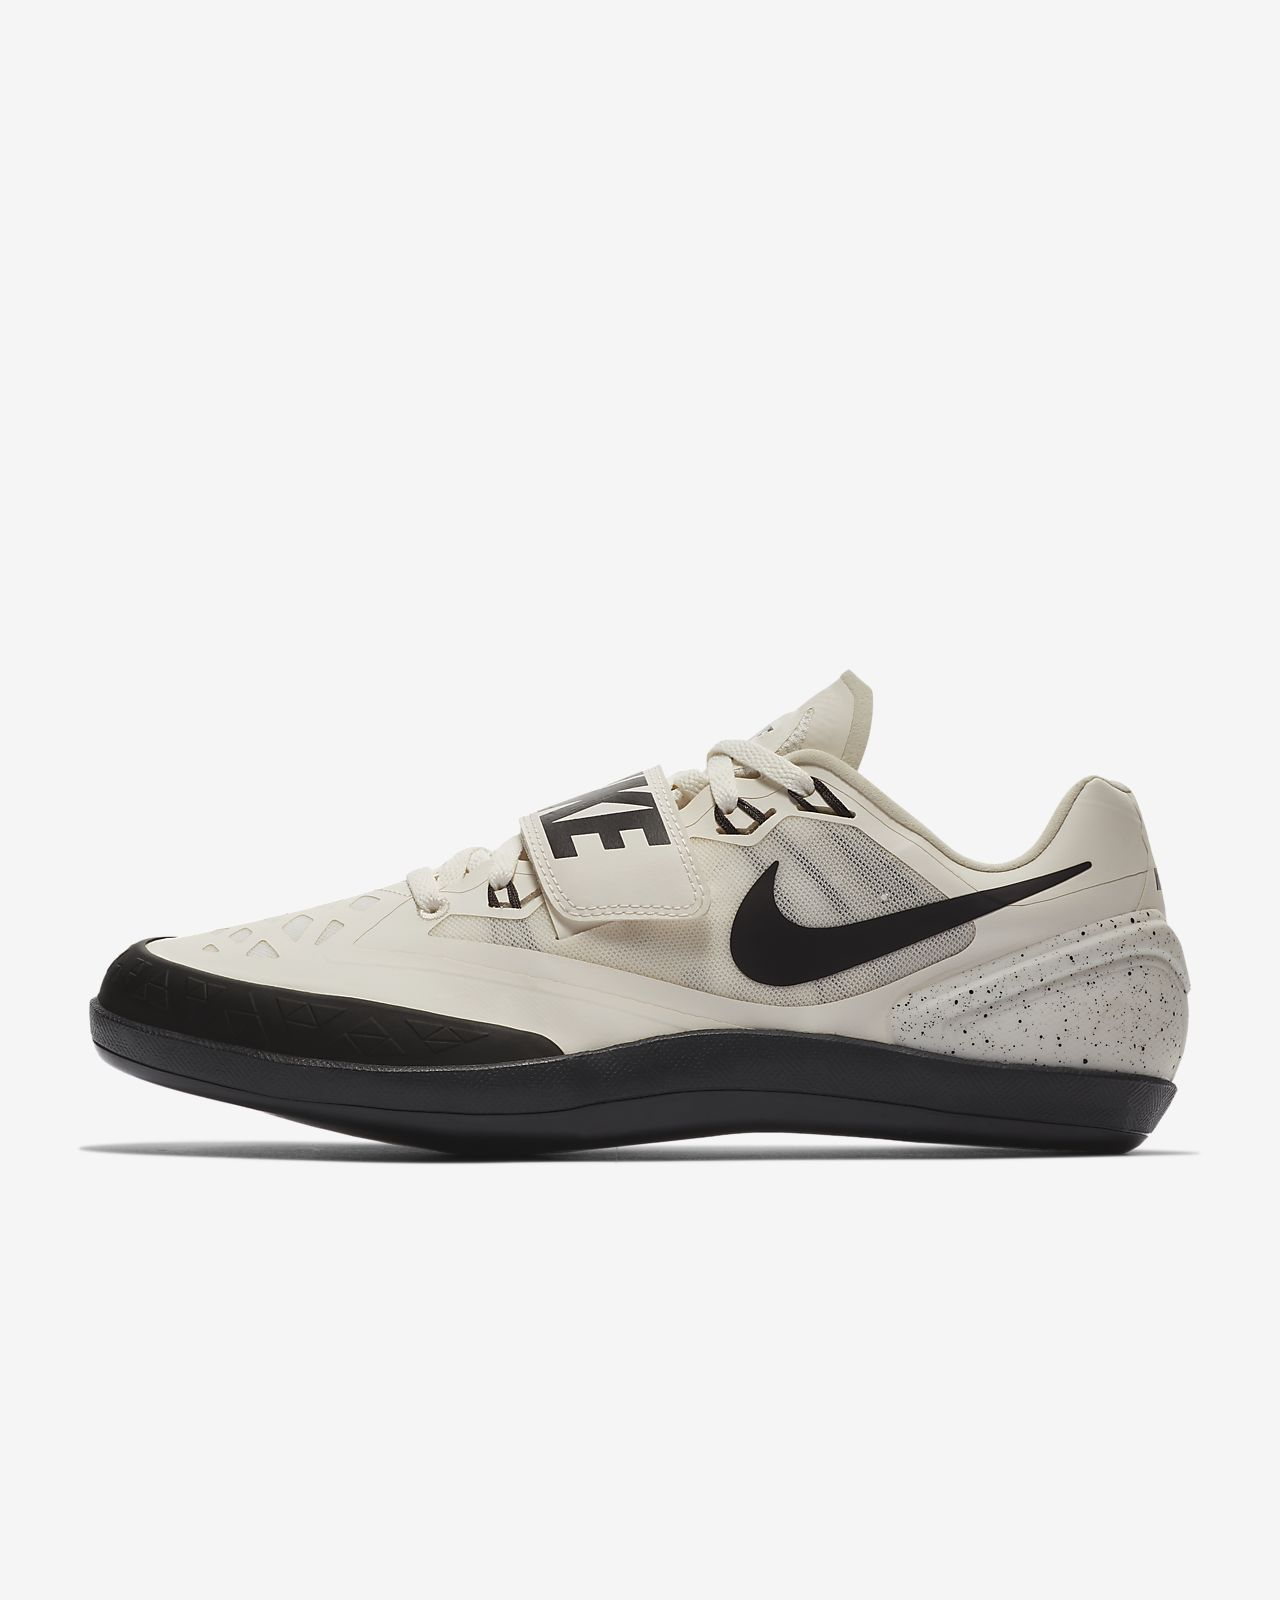 1ab175306953d Nike Zoom Rotational 6 Unisex Throwing Shoe. Nike.com